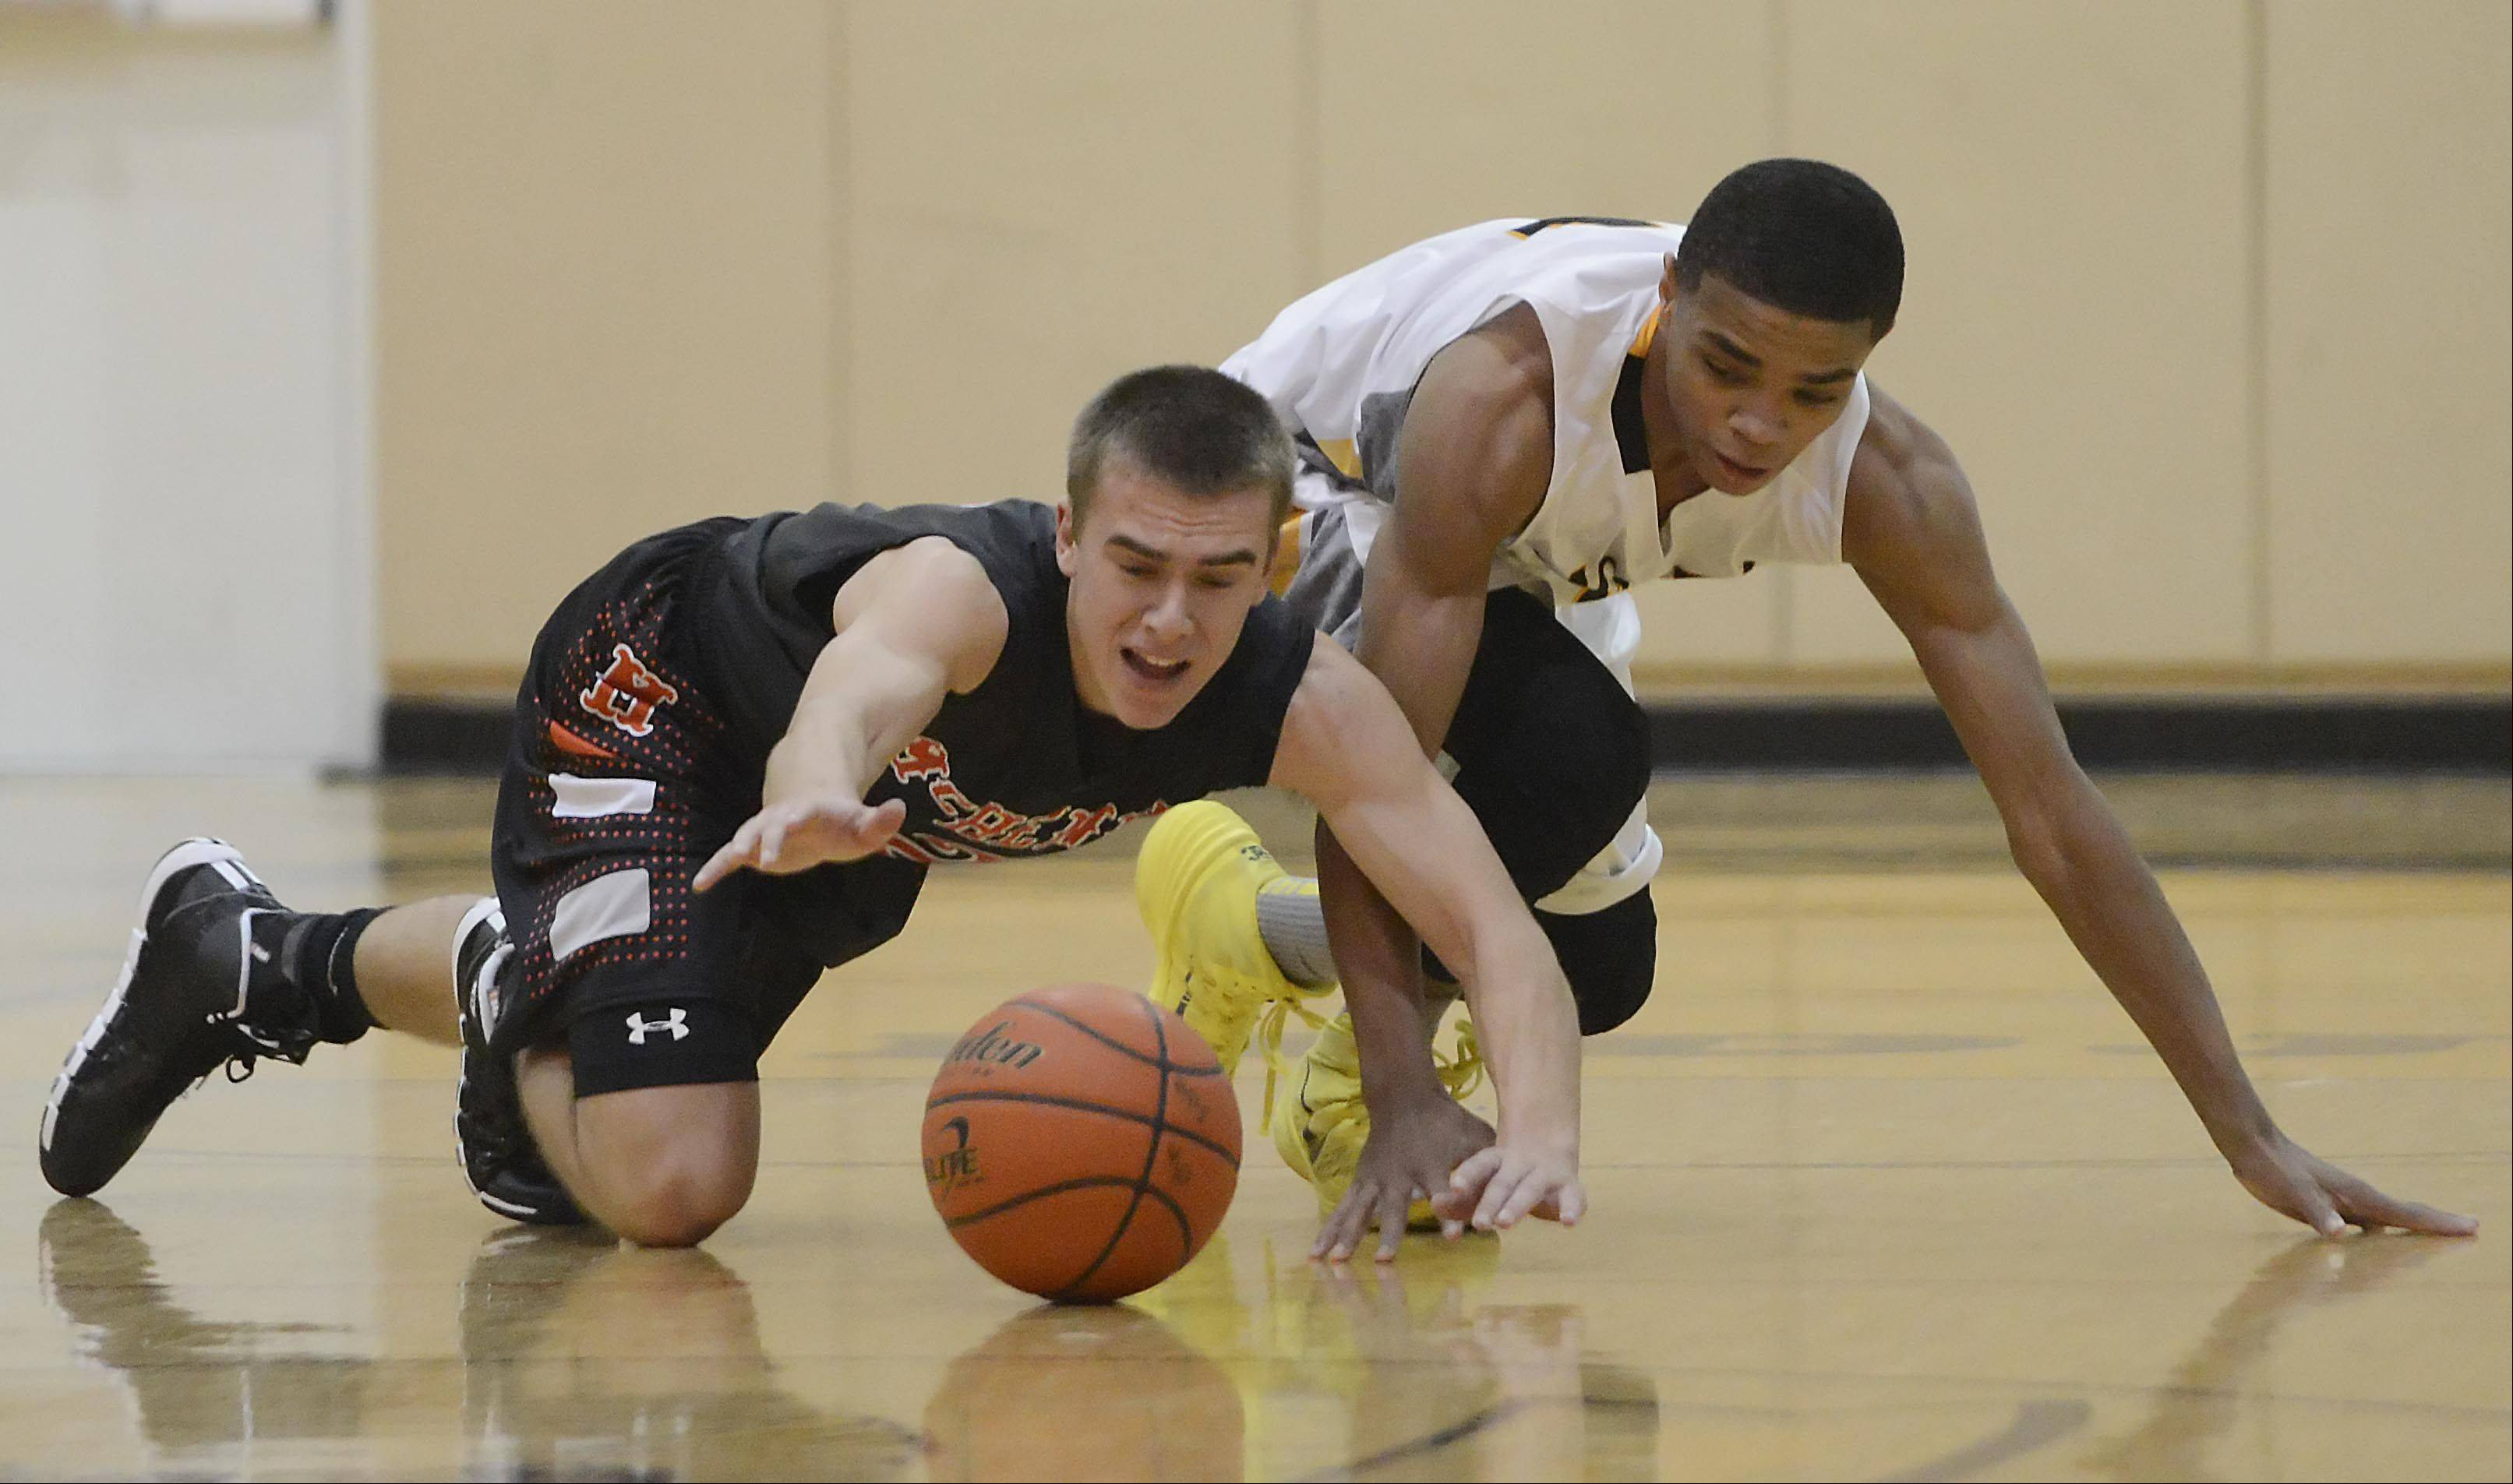 McHenry's Cody Freund and Jacobs' Kenton Mack scramble for a loose ball.